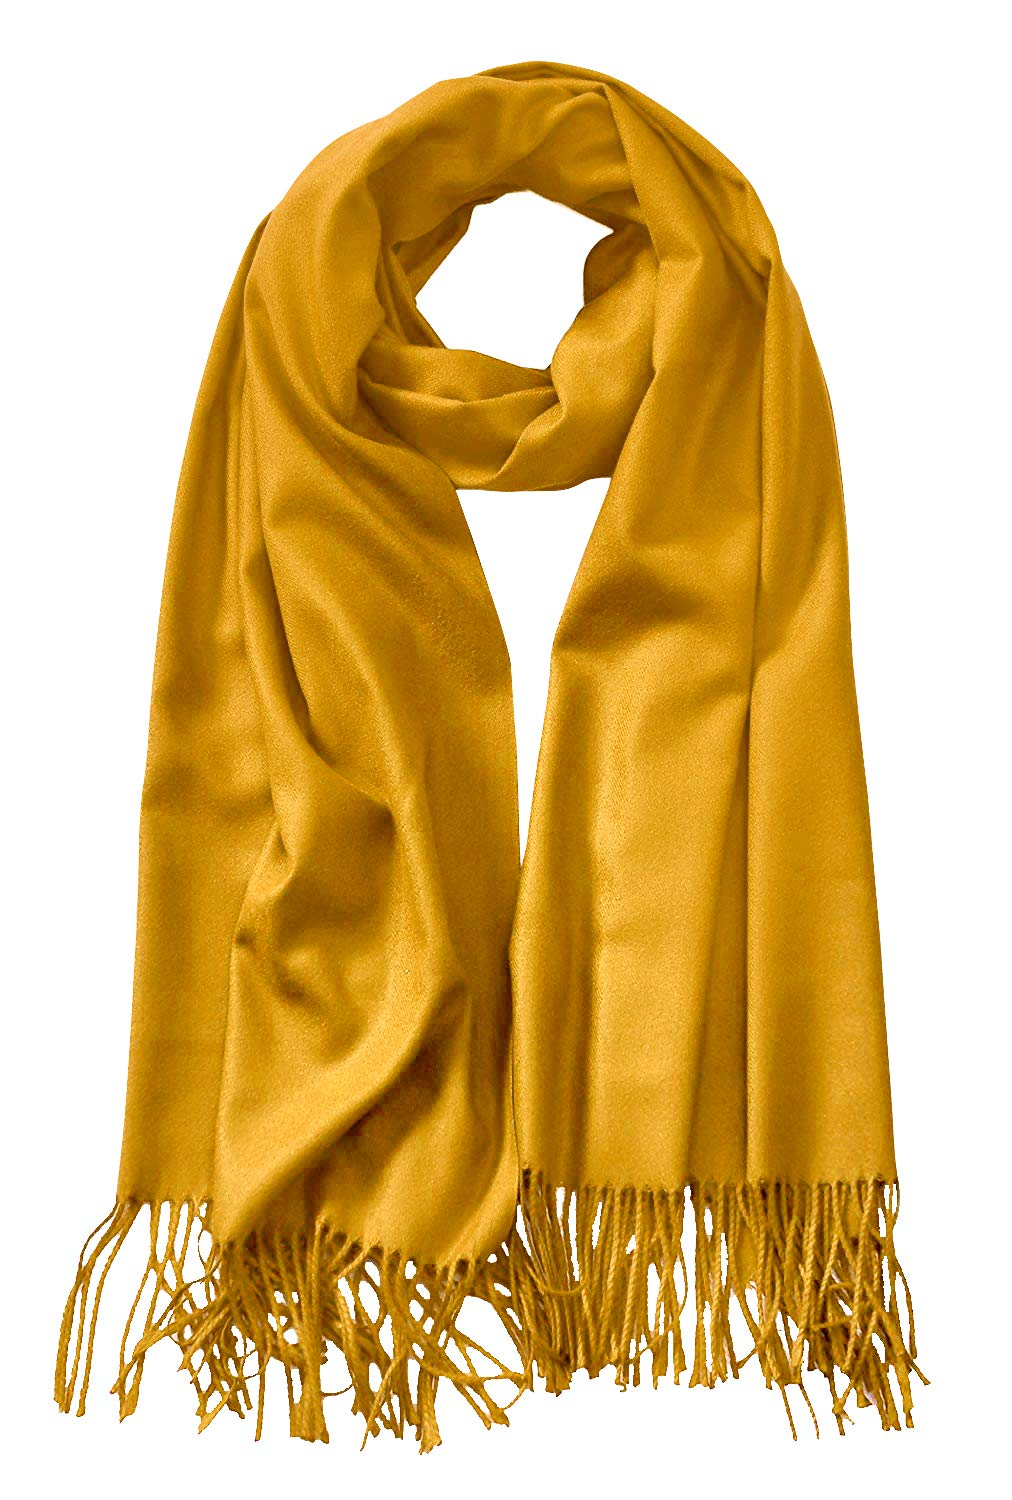 MBJ Shawls and Wraps Elegant Cashmere Scarfs for Women Stylish Warm Blanket Solid Winter Scarves ONESIZE MUSTARD by Made By Johnny